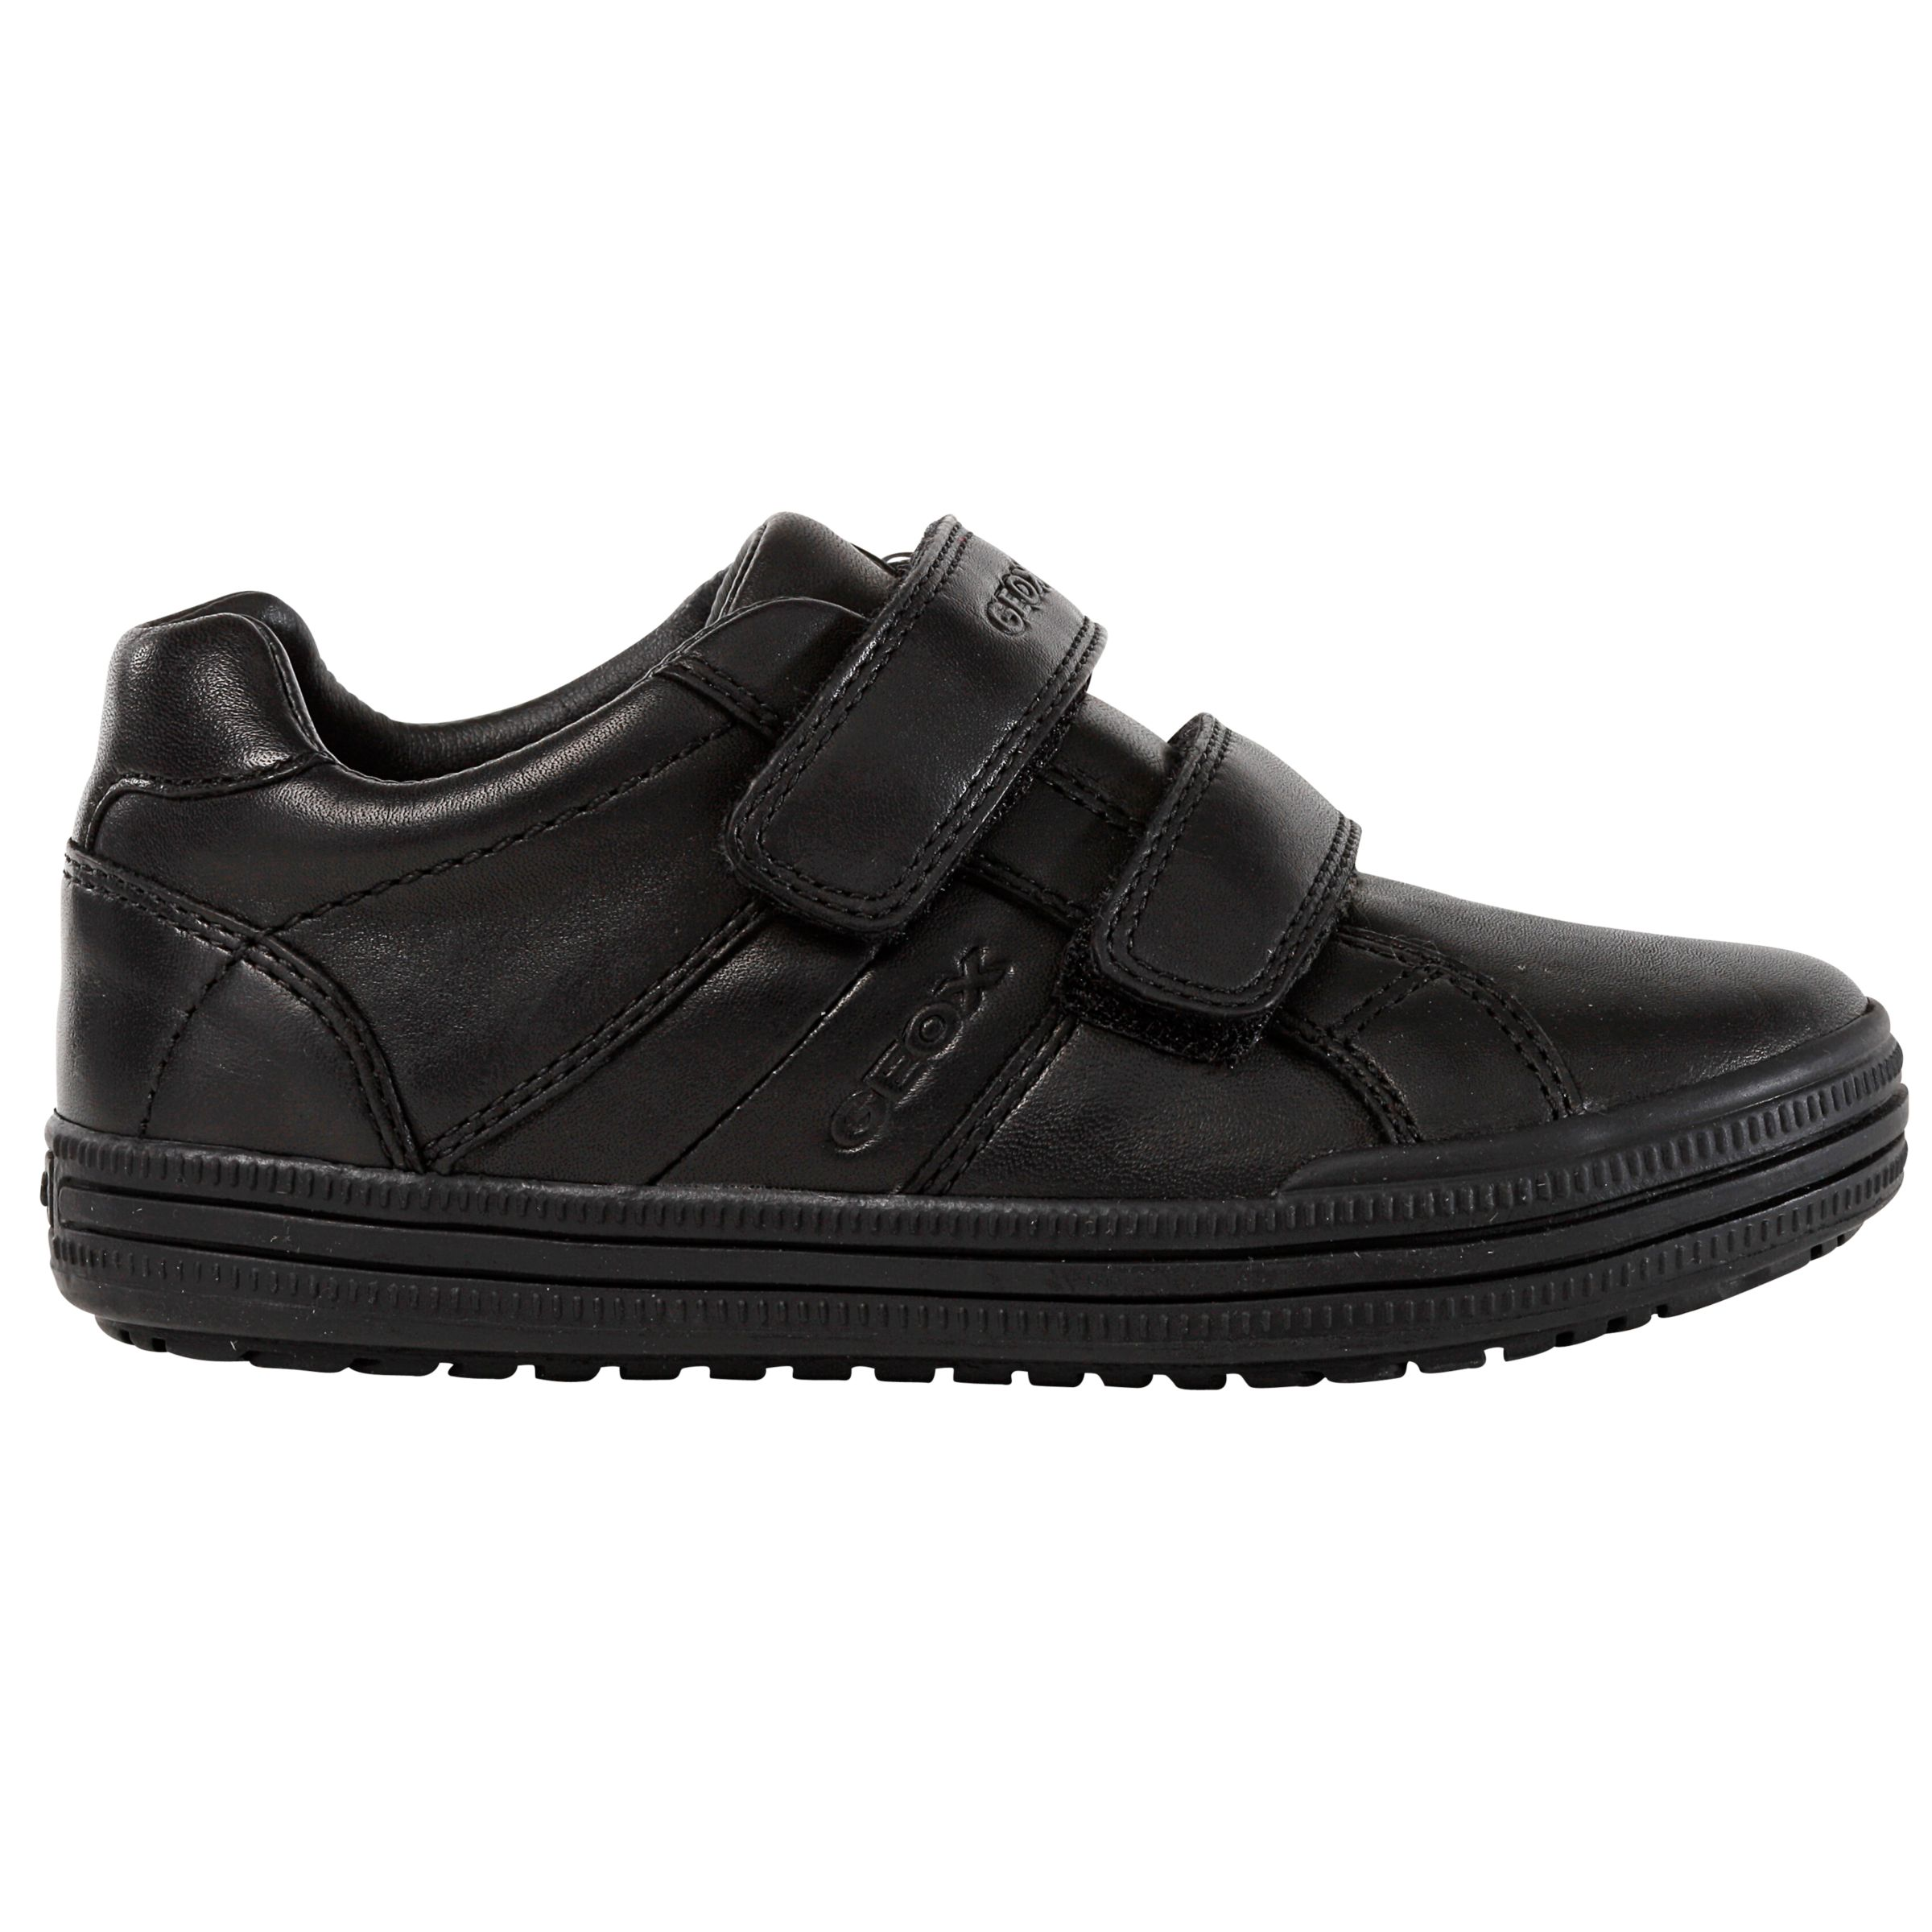 more photos ea2f8 45e24 Geox Children's Elvis Leather Trainers, Black at John Lewis ...